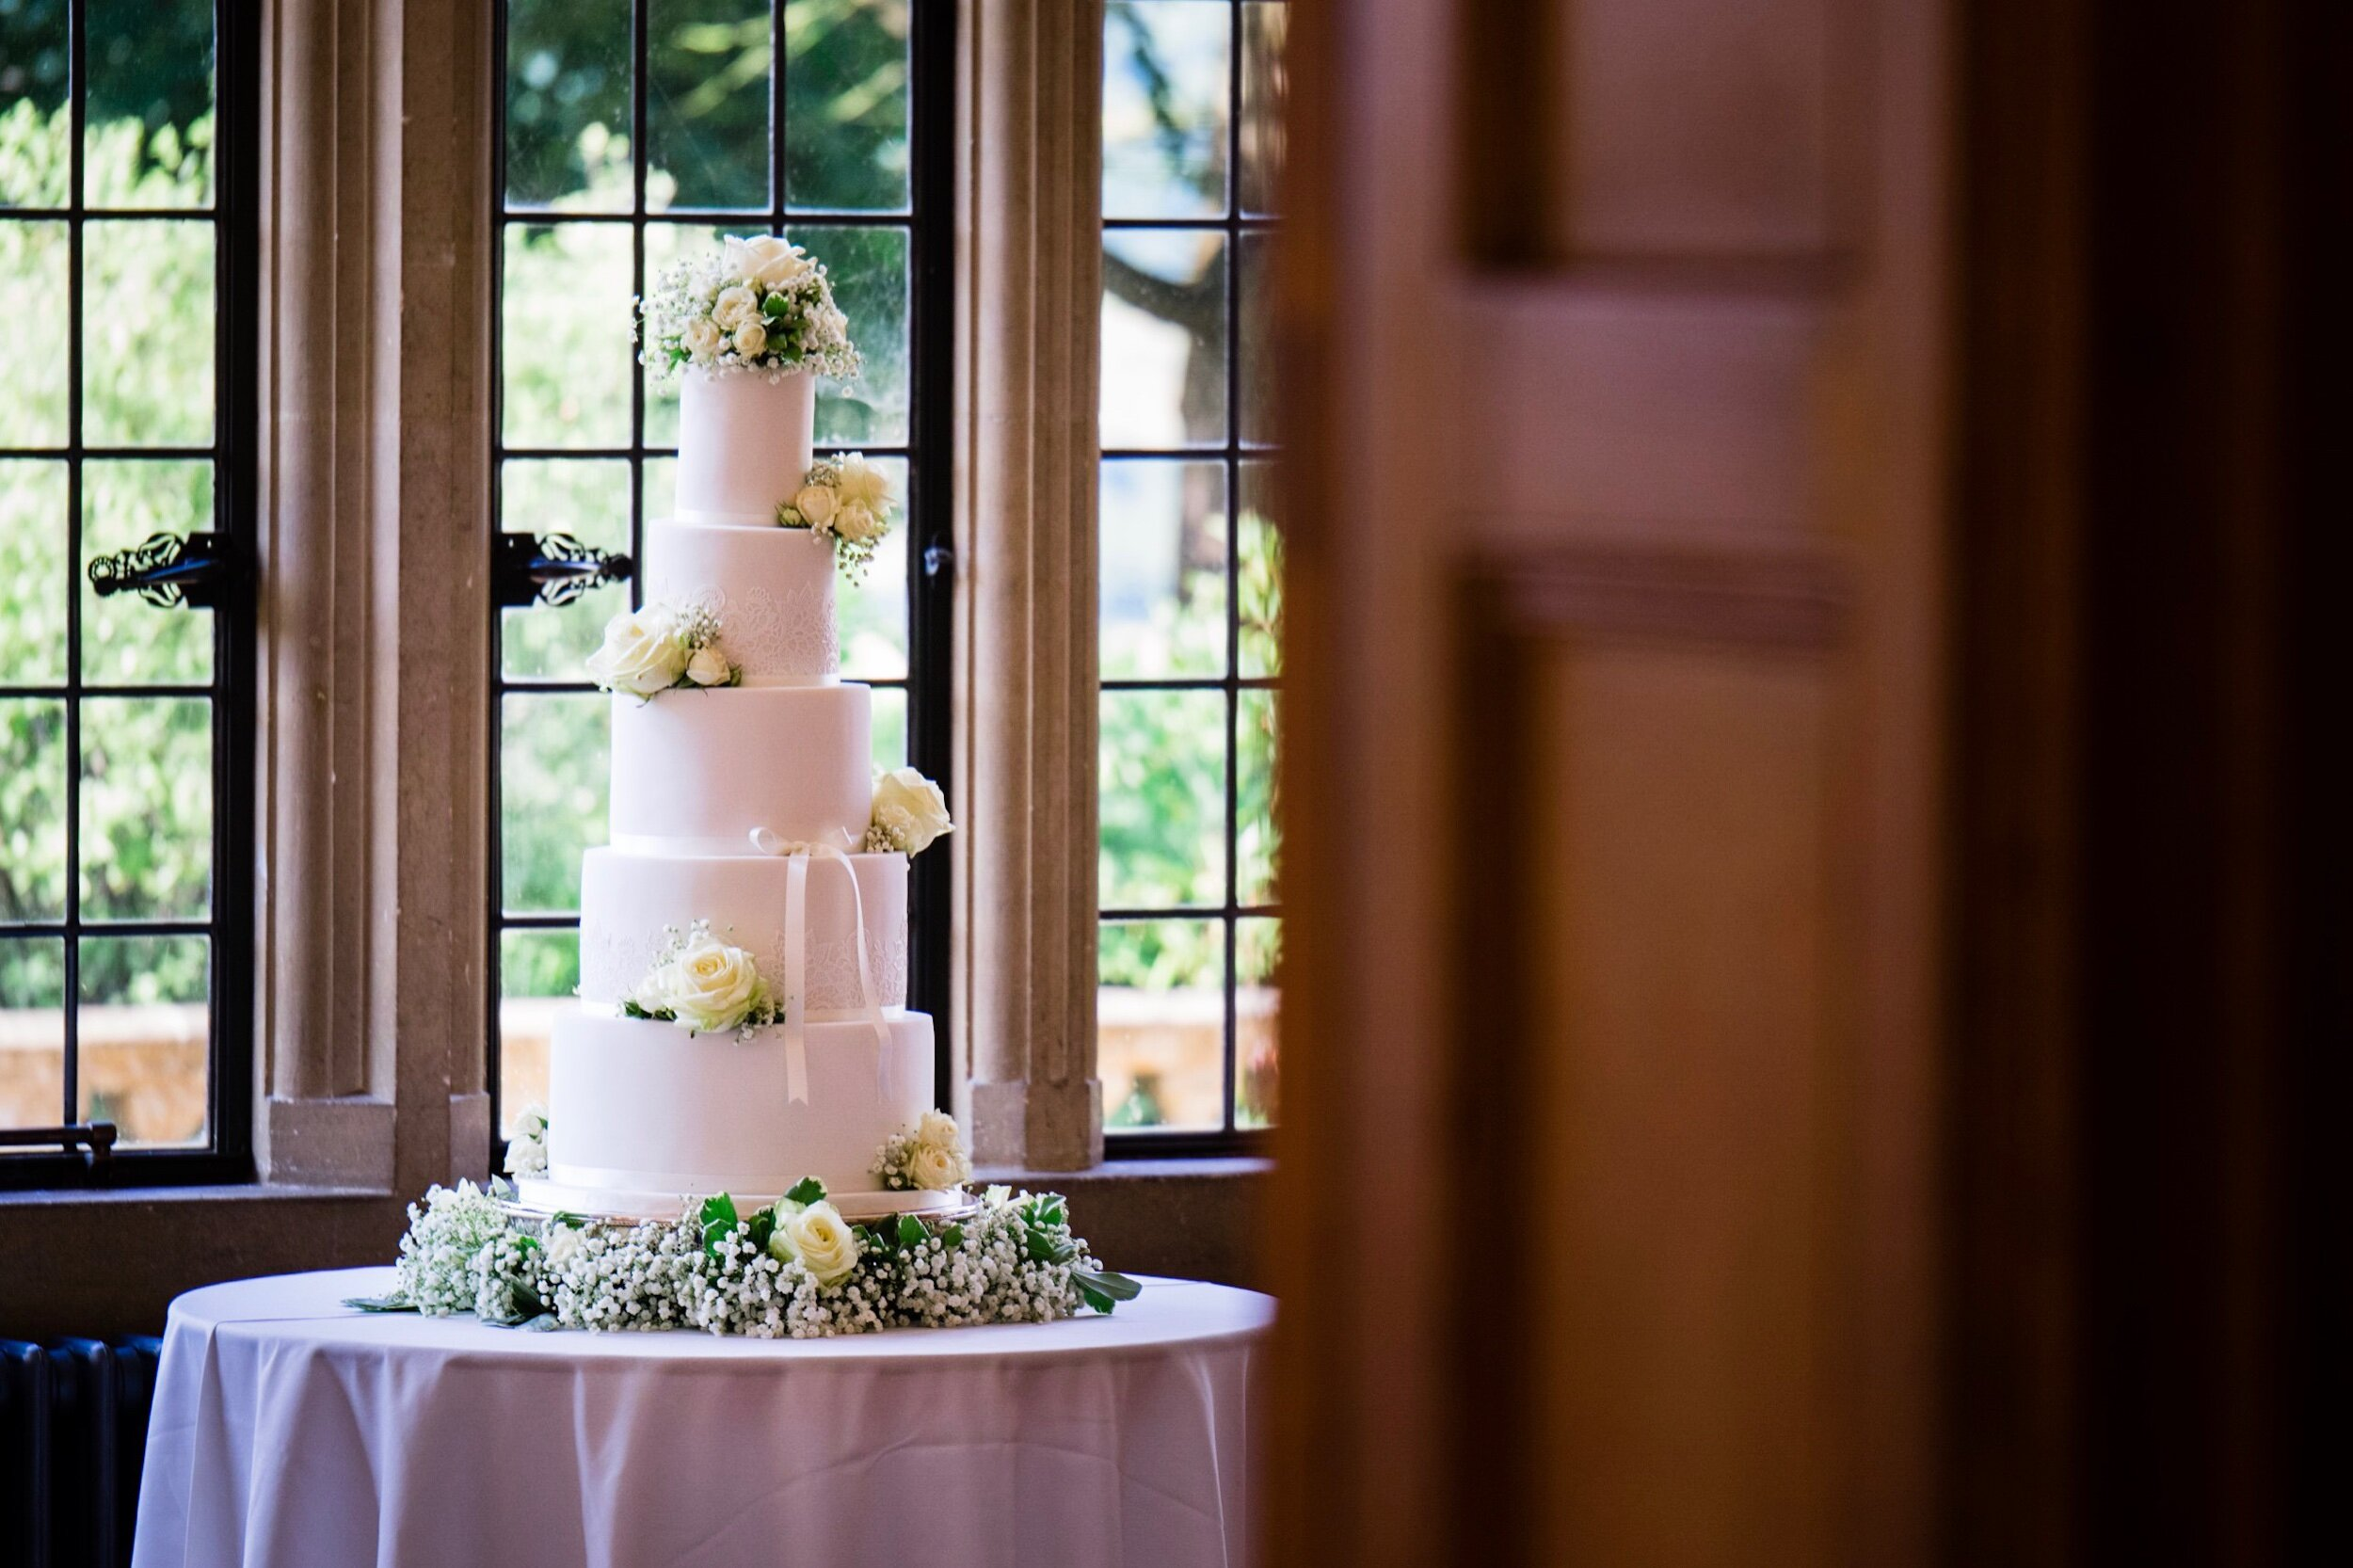 Gorgeous wedding cake next to a big window at a lovely wedding venue in Bristol